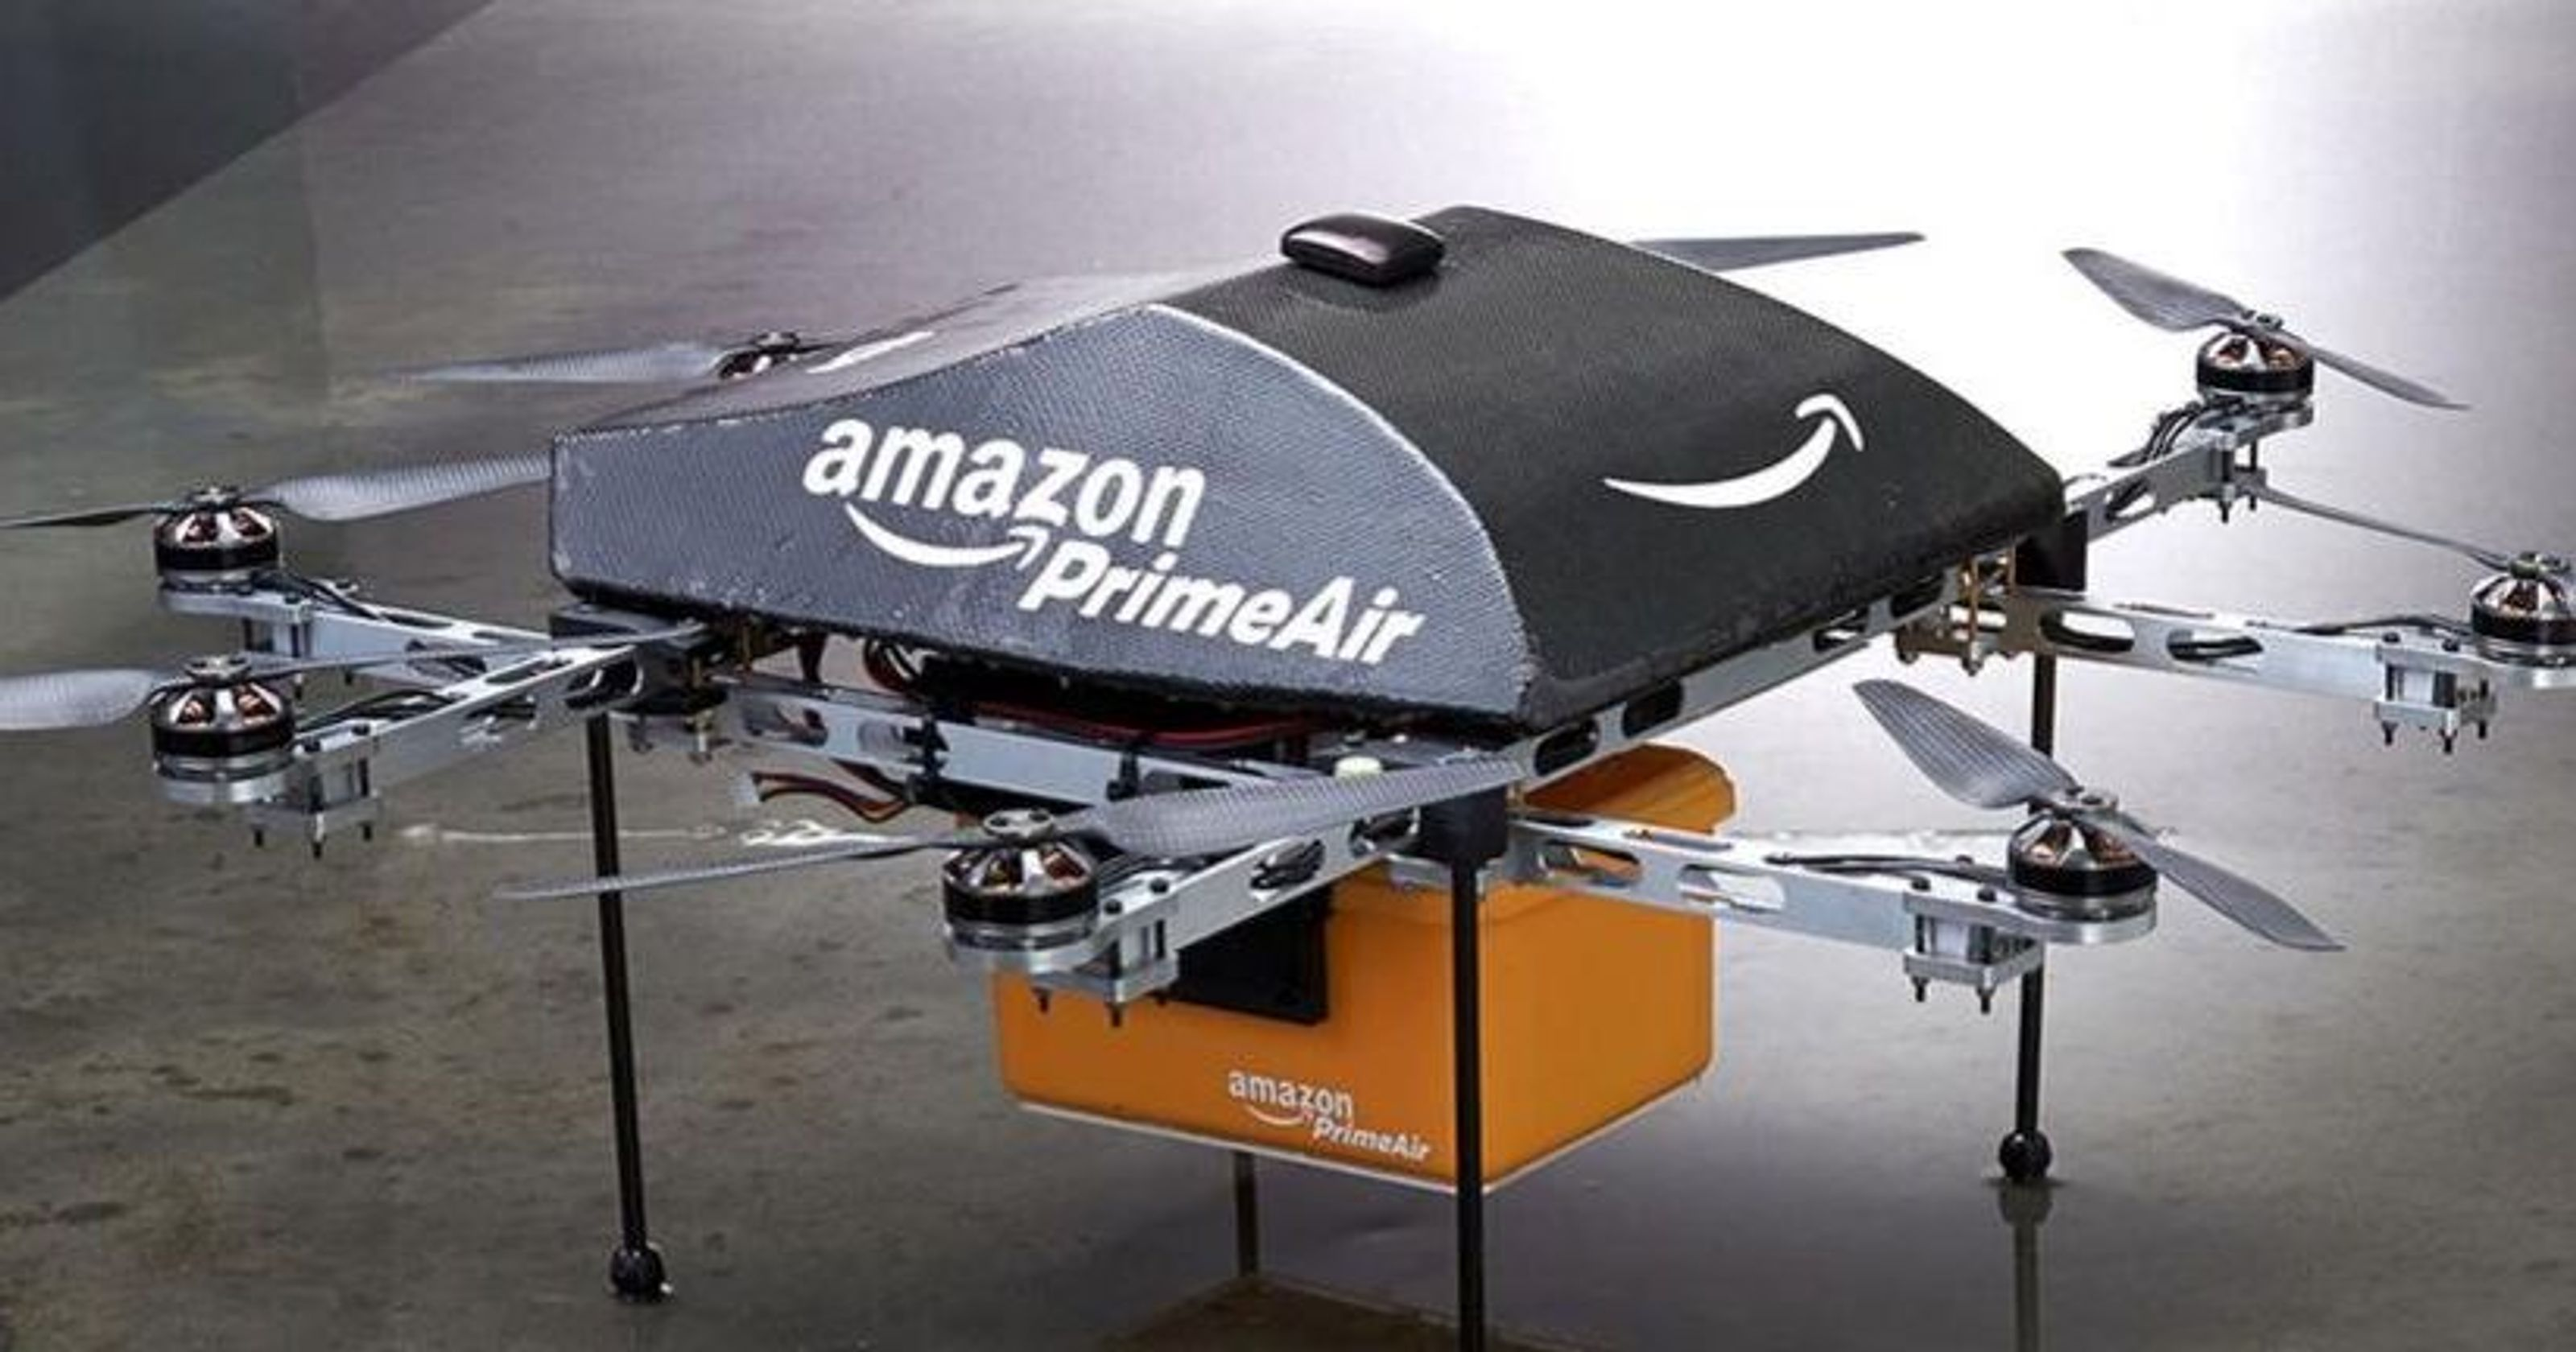 Amazon launched new electric drone for delivery: find out are you eligible for this delivery